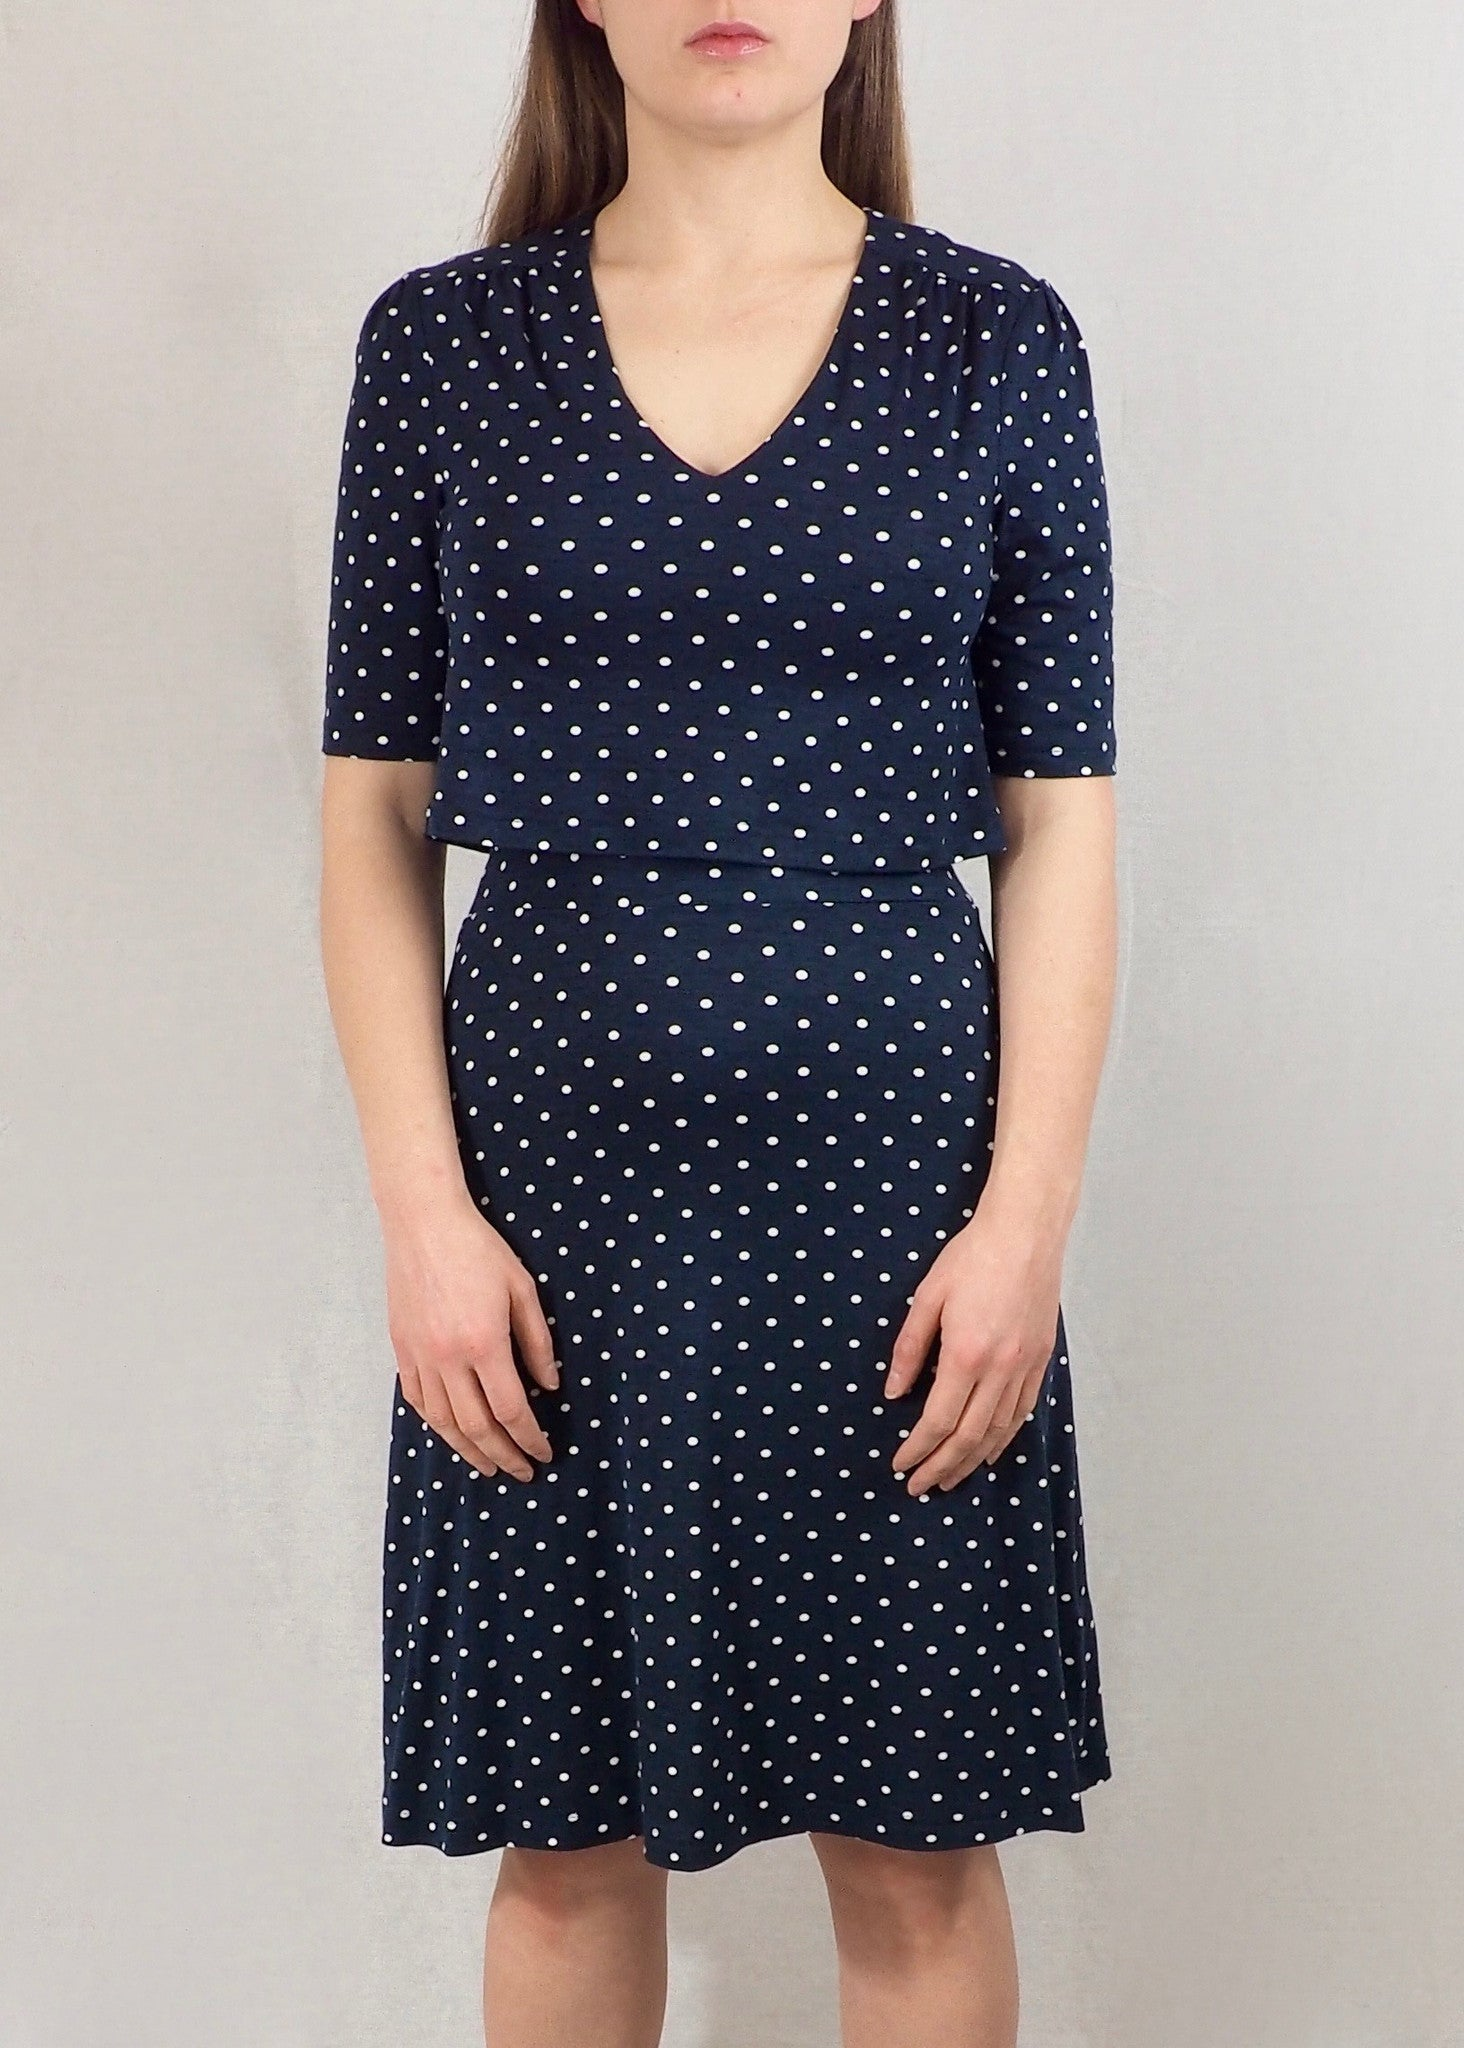 Navy Polka Dot Nursing Tea Dress